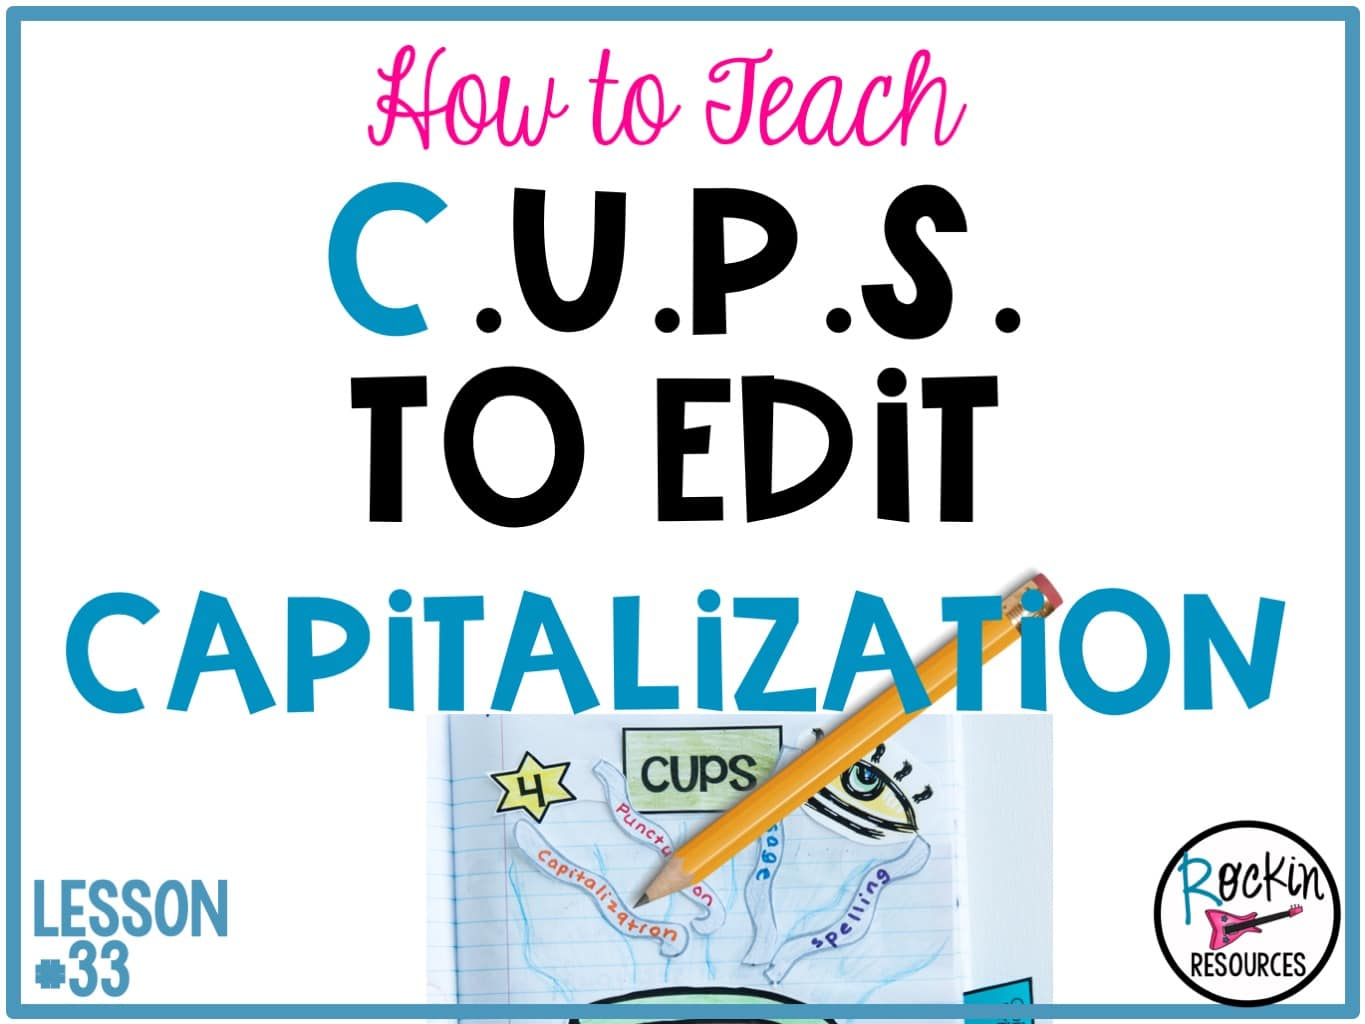 Writing mini lesson 33 on capitalization rockin resources spiritdancerdesigns Image collections